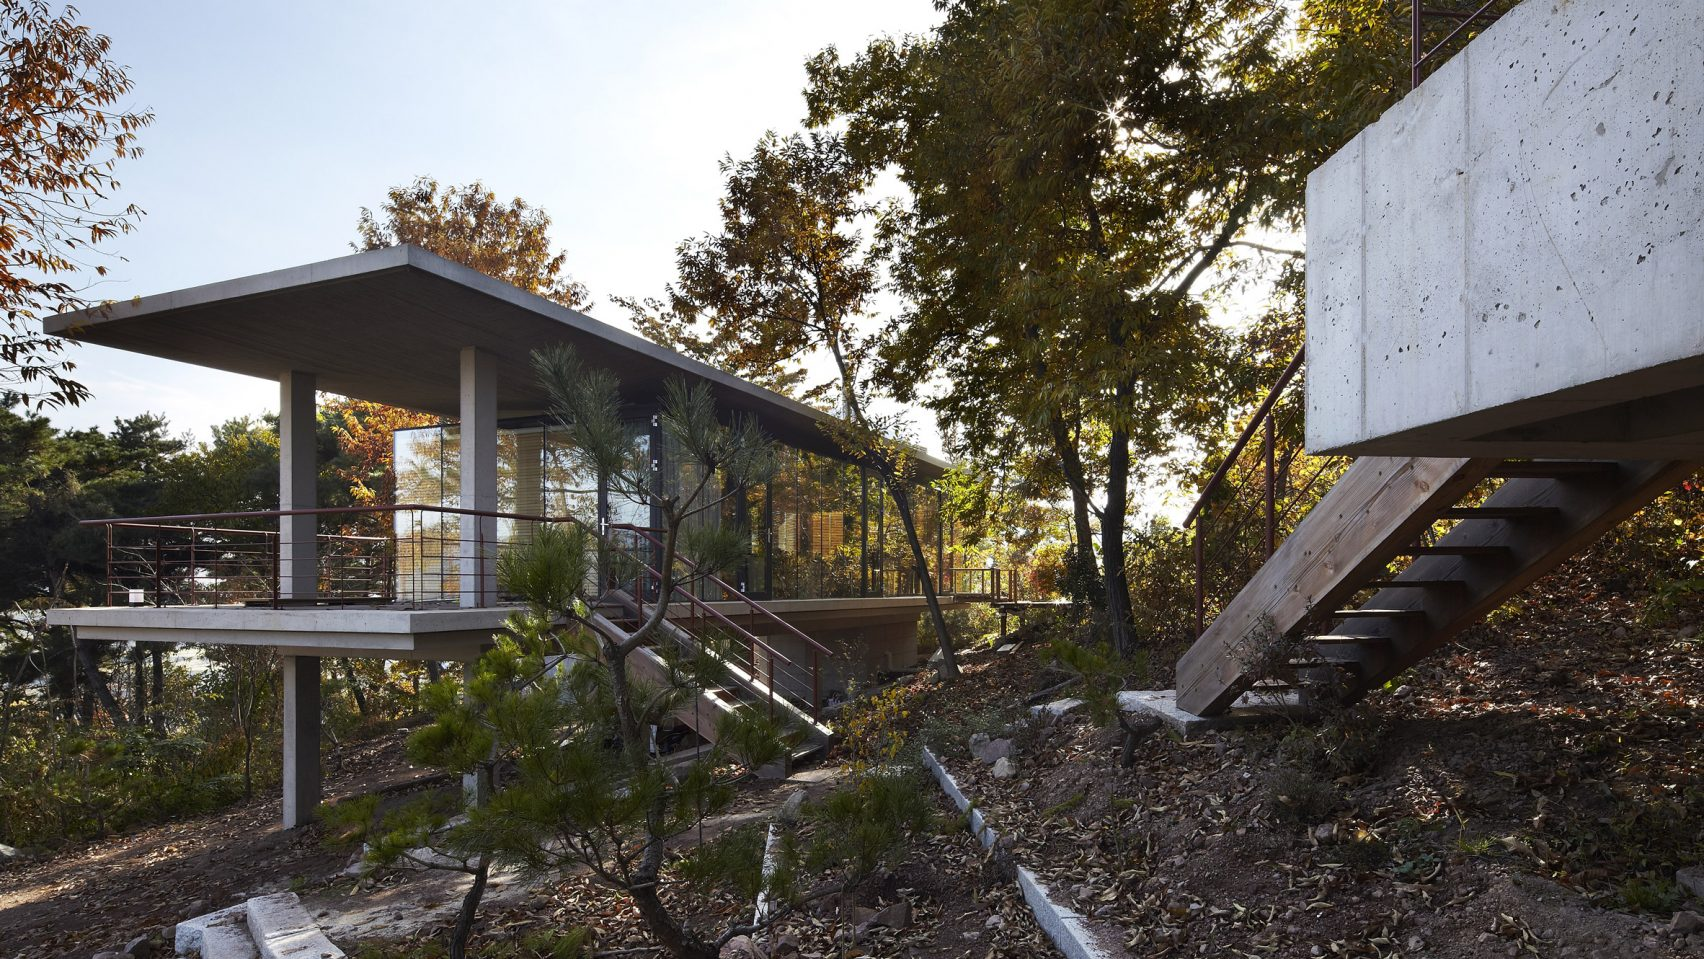 A Cluster Of Concrete Buildings Make Up This Forest Home